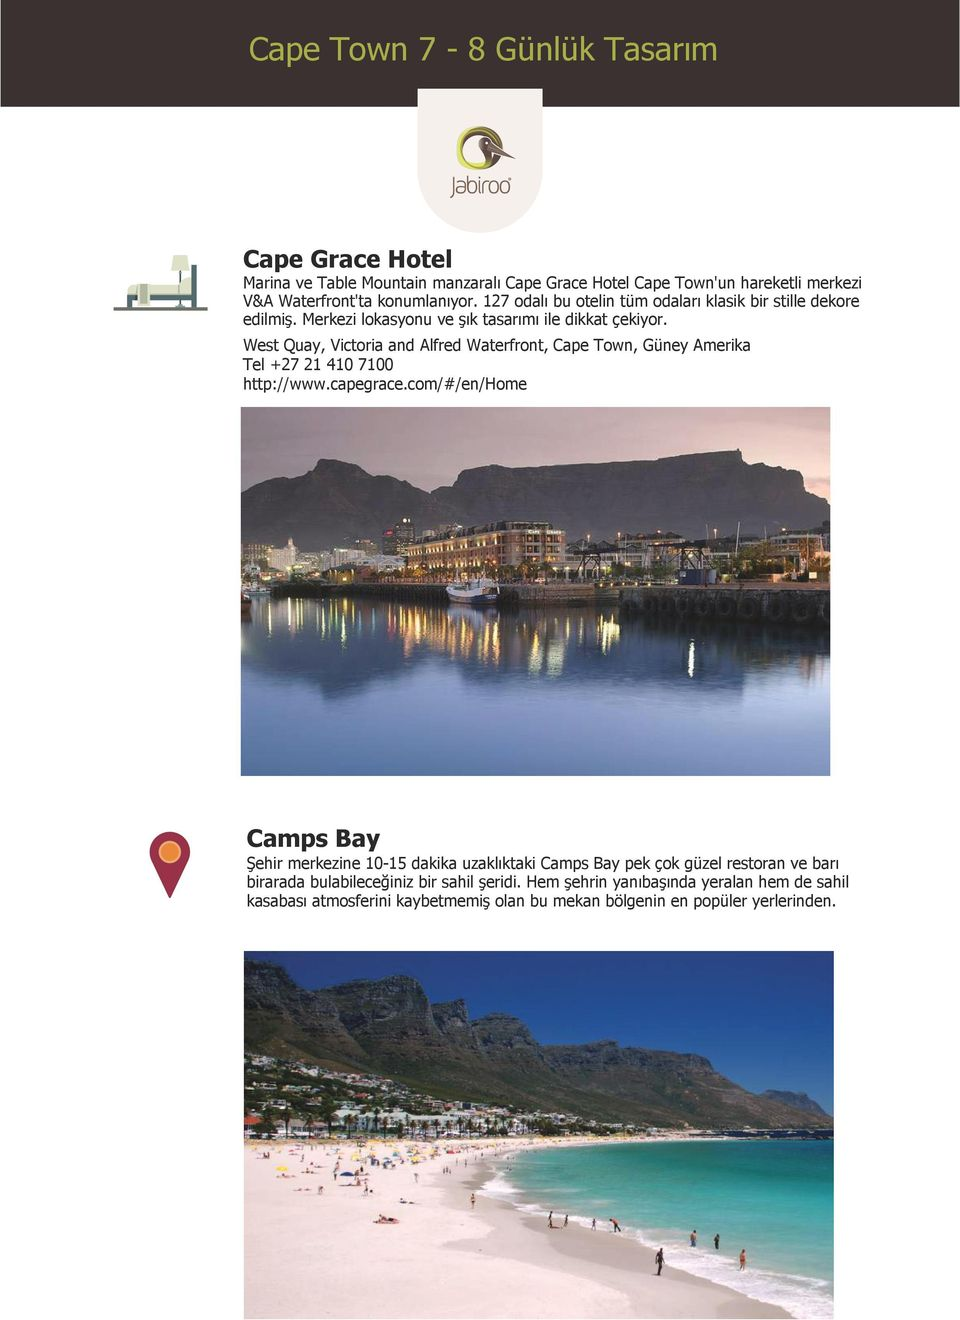 West Quay, Victoria and Alfred Waterfront, Cape Town, Güney Amerika Tel +27 21 410 7100 http://www.capegrace.